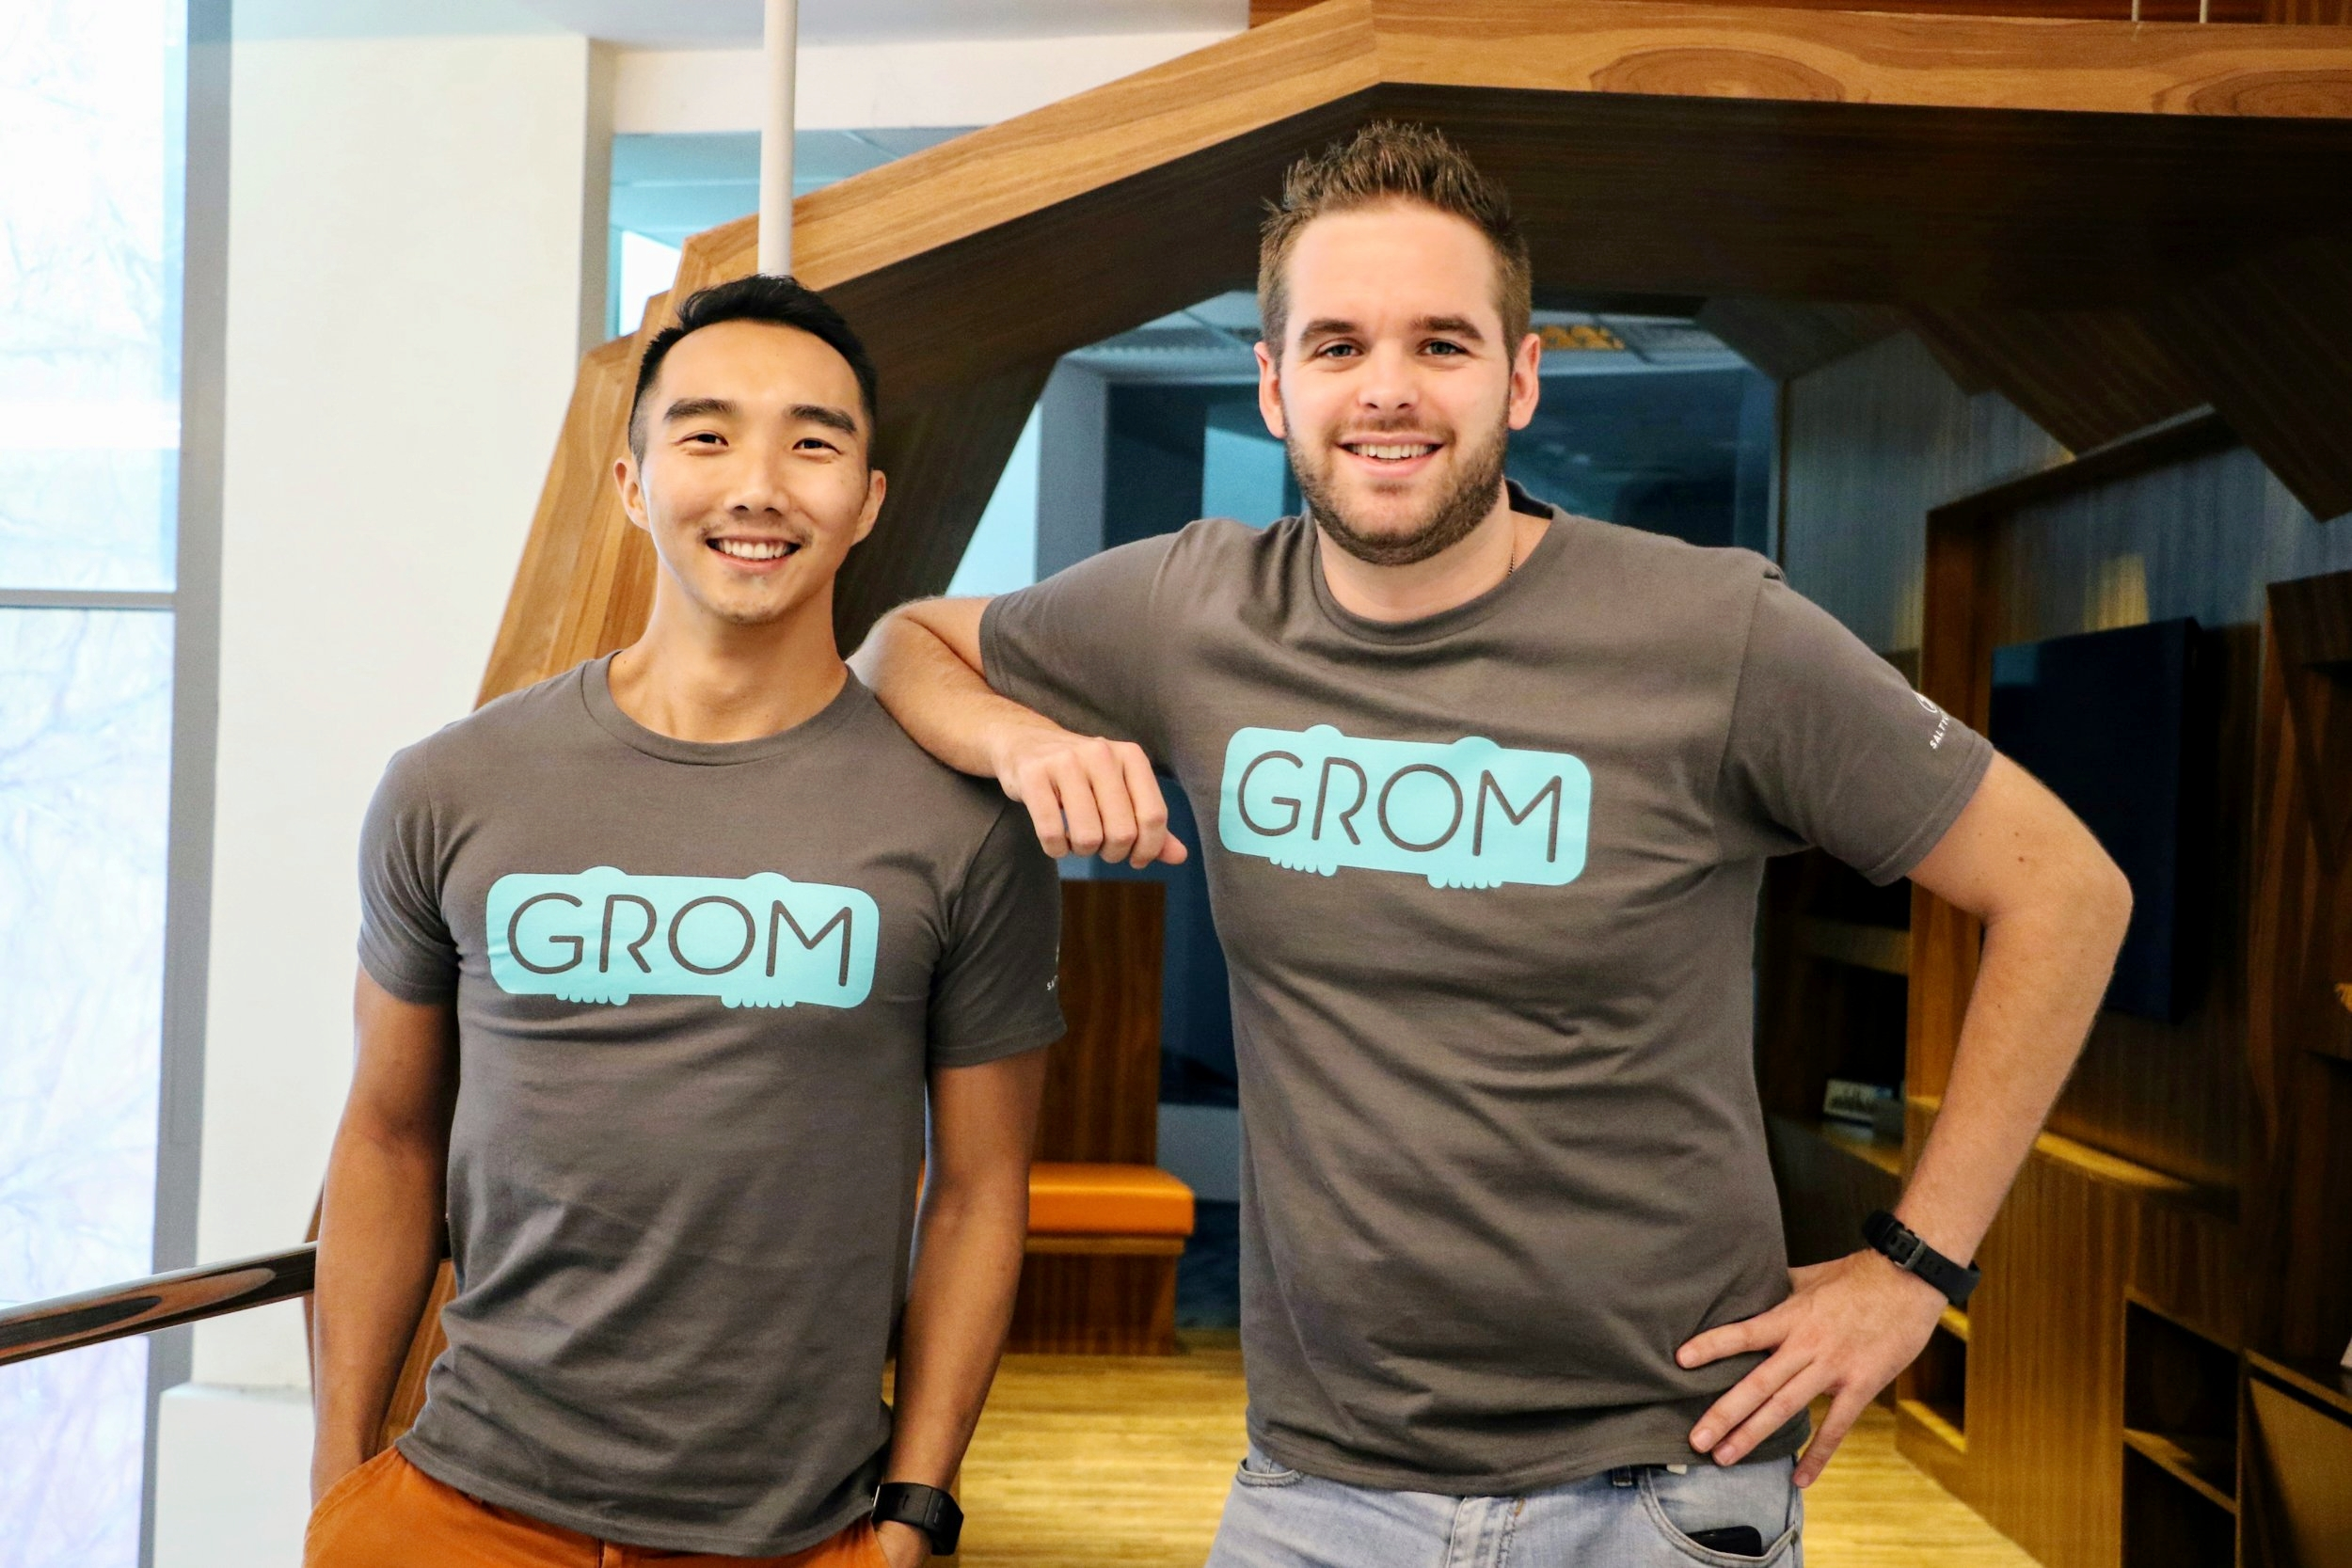 GROM was founded to connect clinicians and bespoke medical device producers. We strive to optimize and improve the journey from prescribing to fulfilling medical devices.